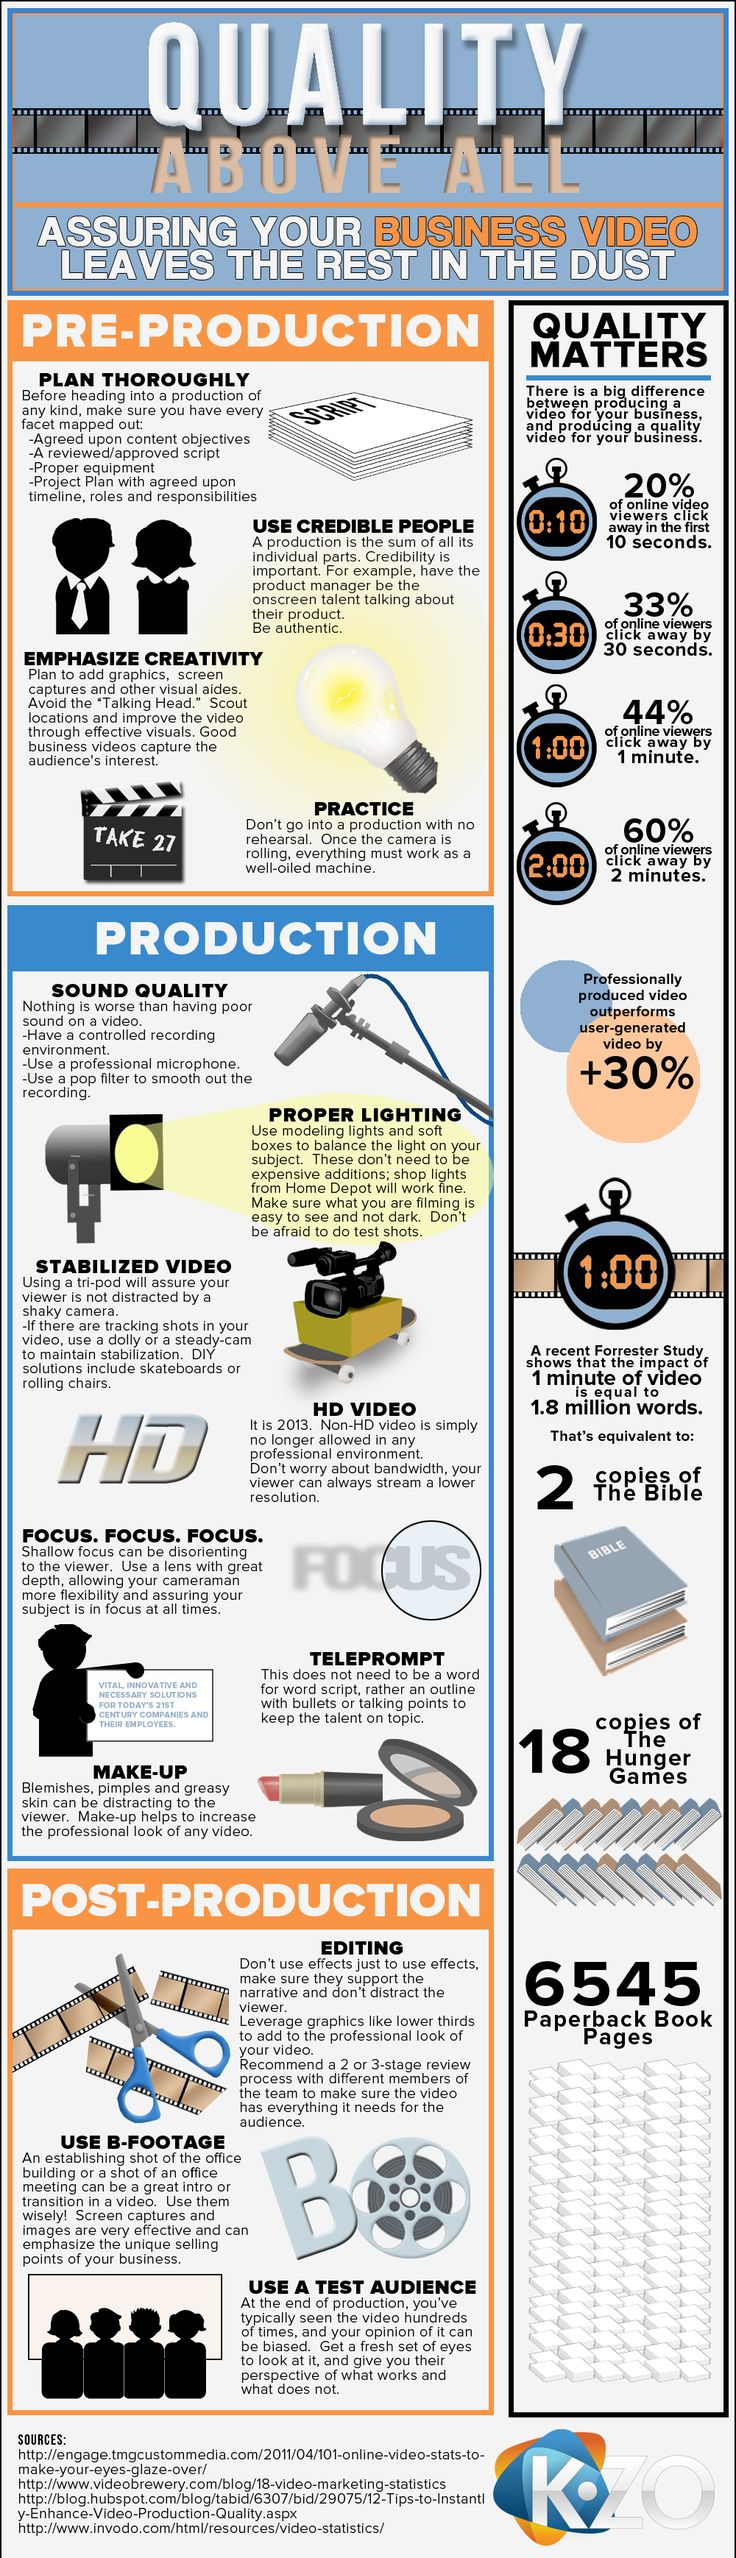 #Infographic : How To Make A Quality Business Video